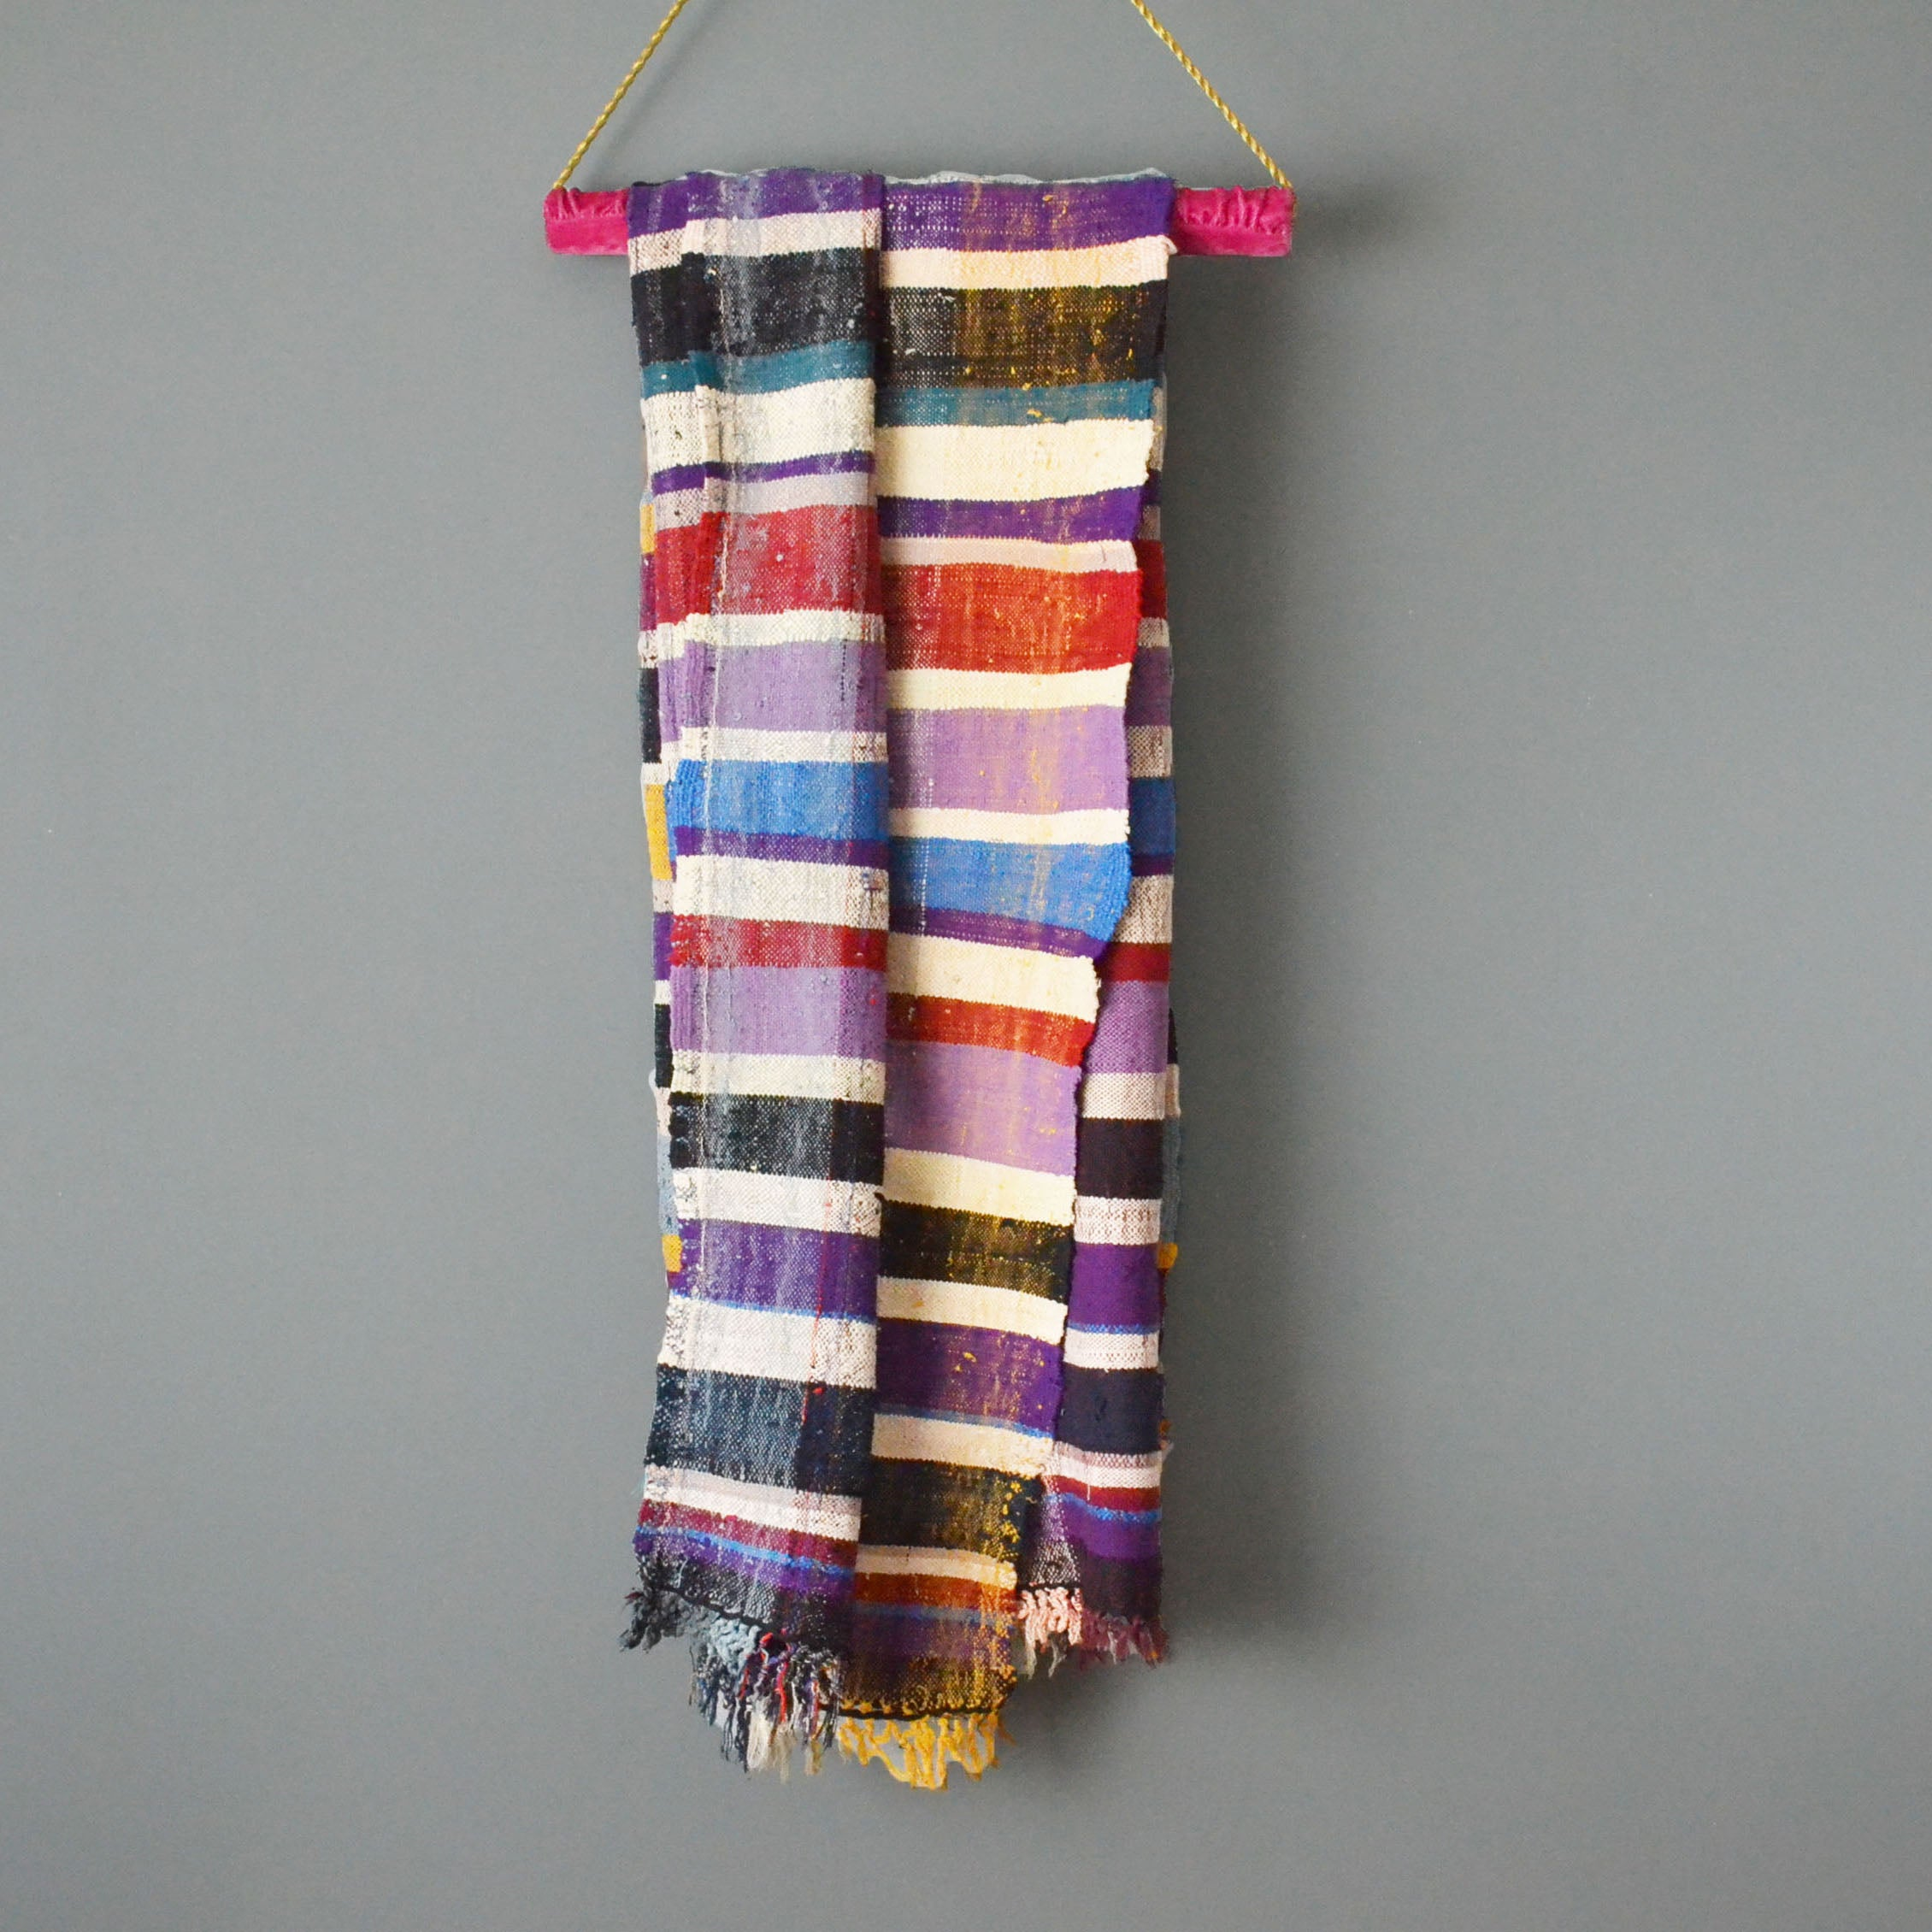 Vintage Moroccan Striped Cotton Blanket